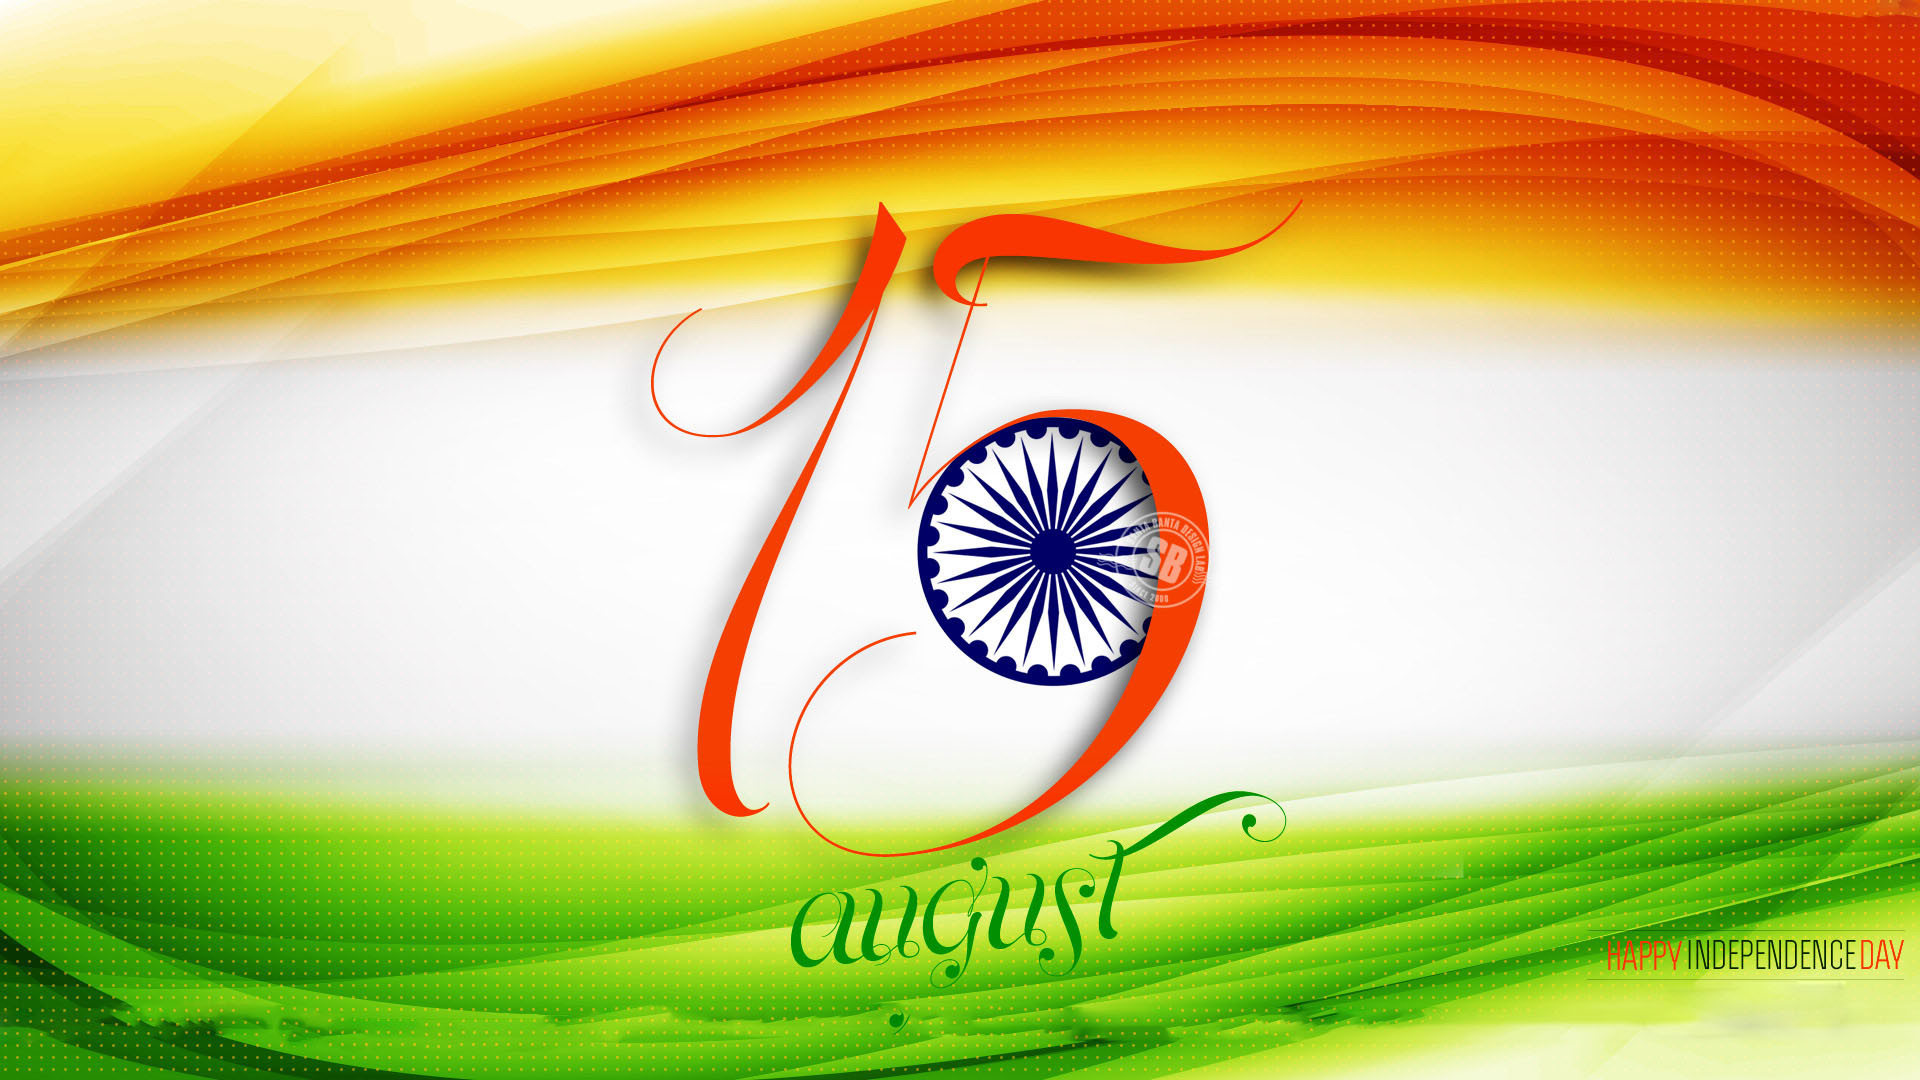 Indian Independence Day HD Pic Wallpaper 2018 79 images 1920x1080